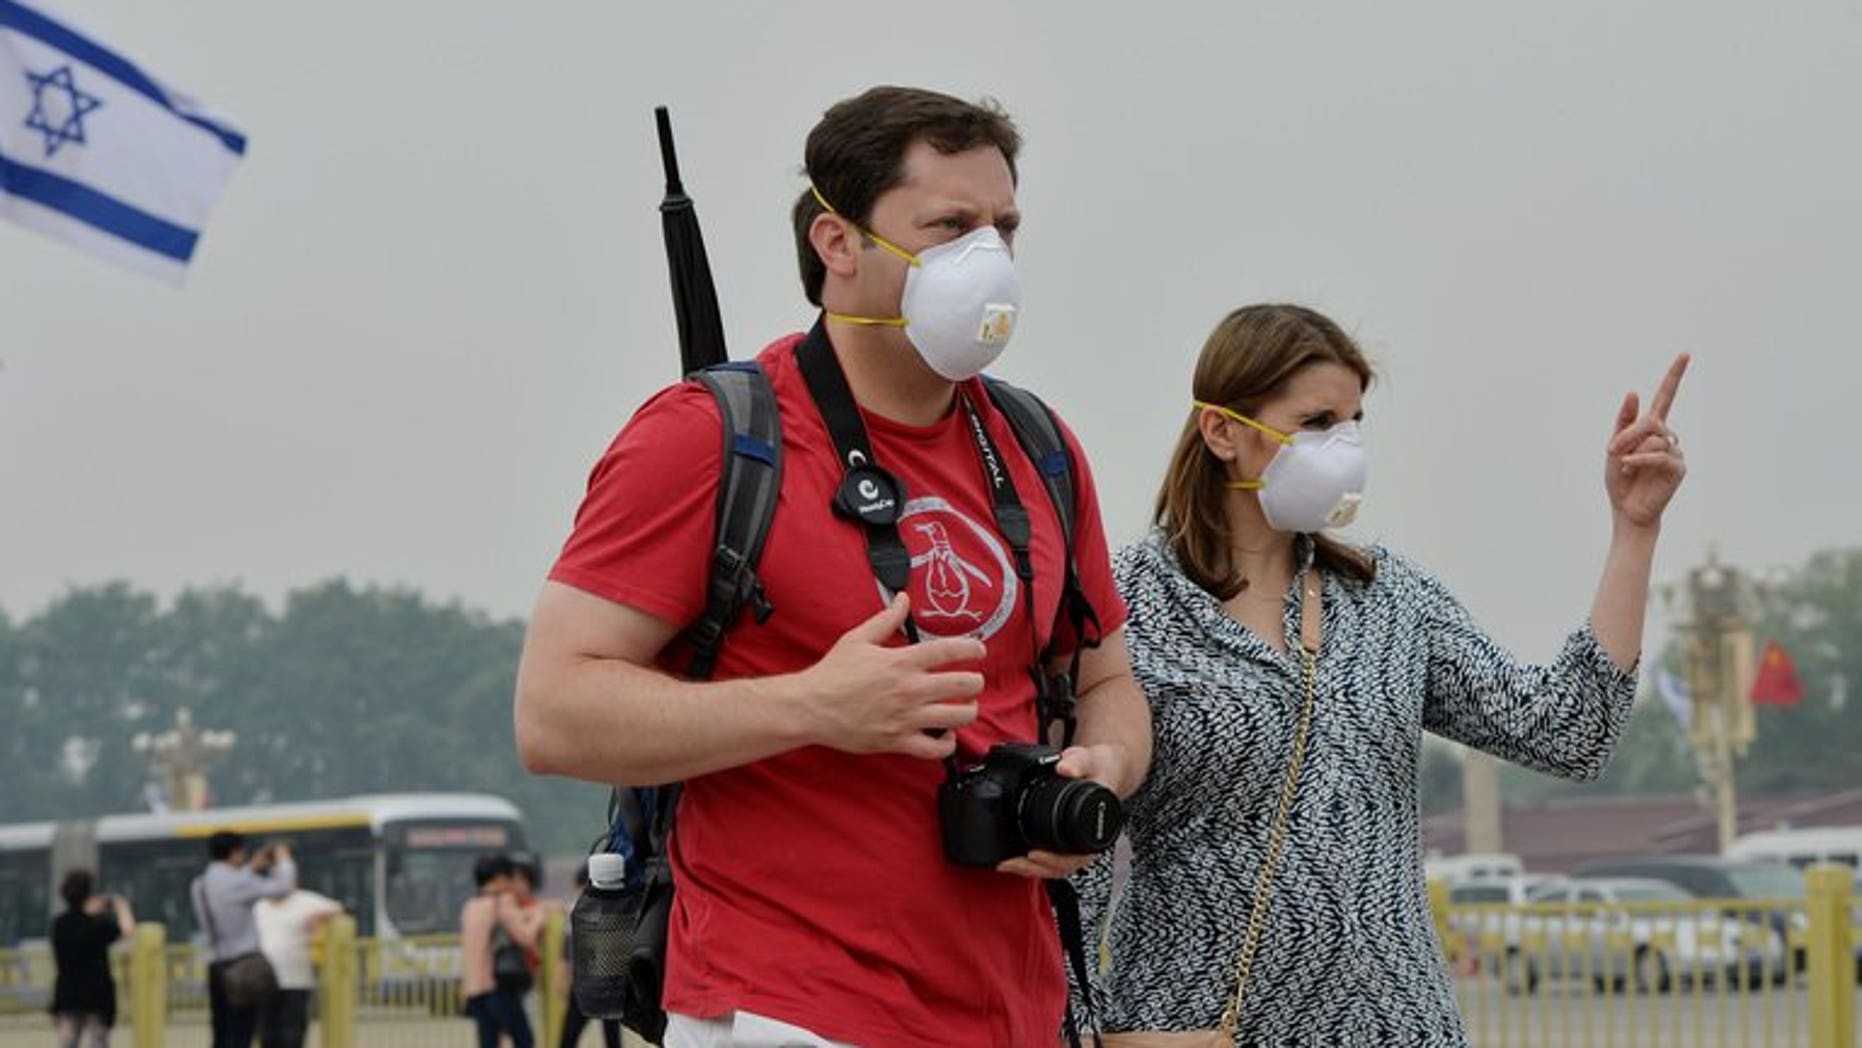 Two tourists wear face masks as they visit Tiananmen Square on a heavily polluted day in Beijing on May 8, 2013. The number of tourists visiting Beijing fell by more than 14% in the first half of this year compared to 2012, with air pollution blamed for the decline.